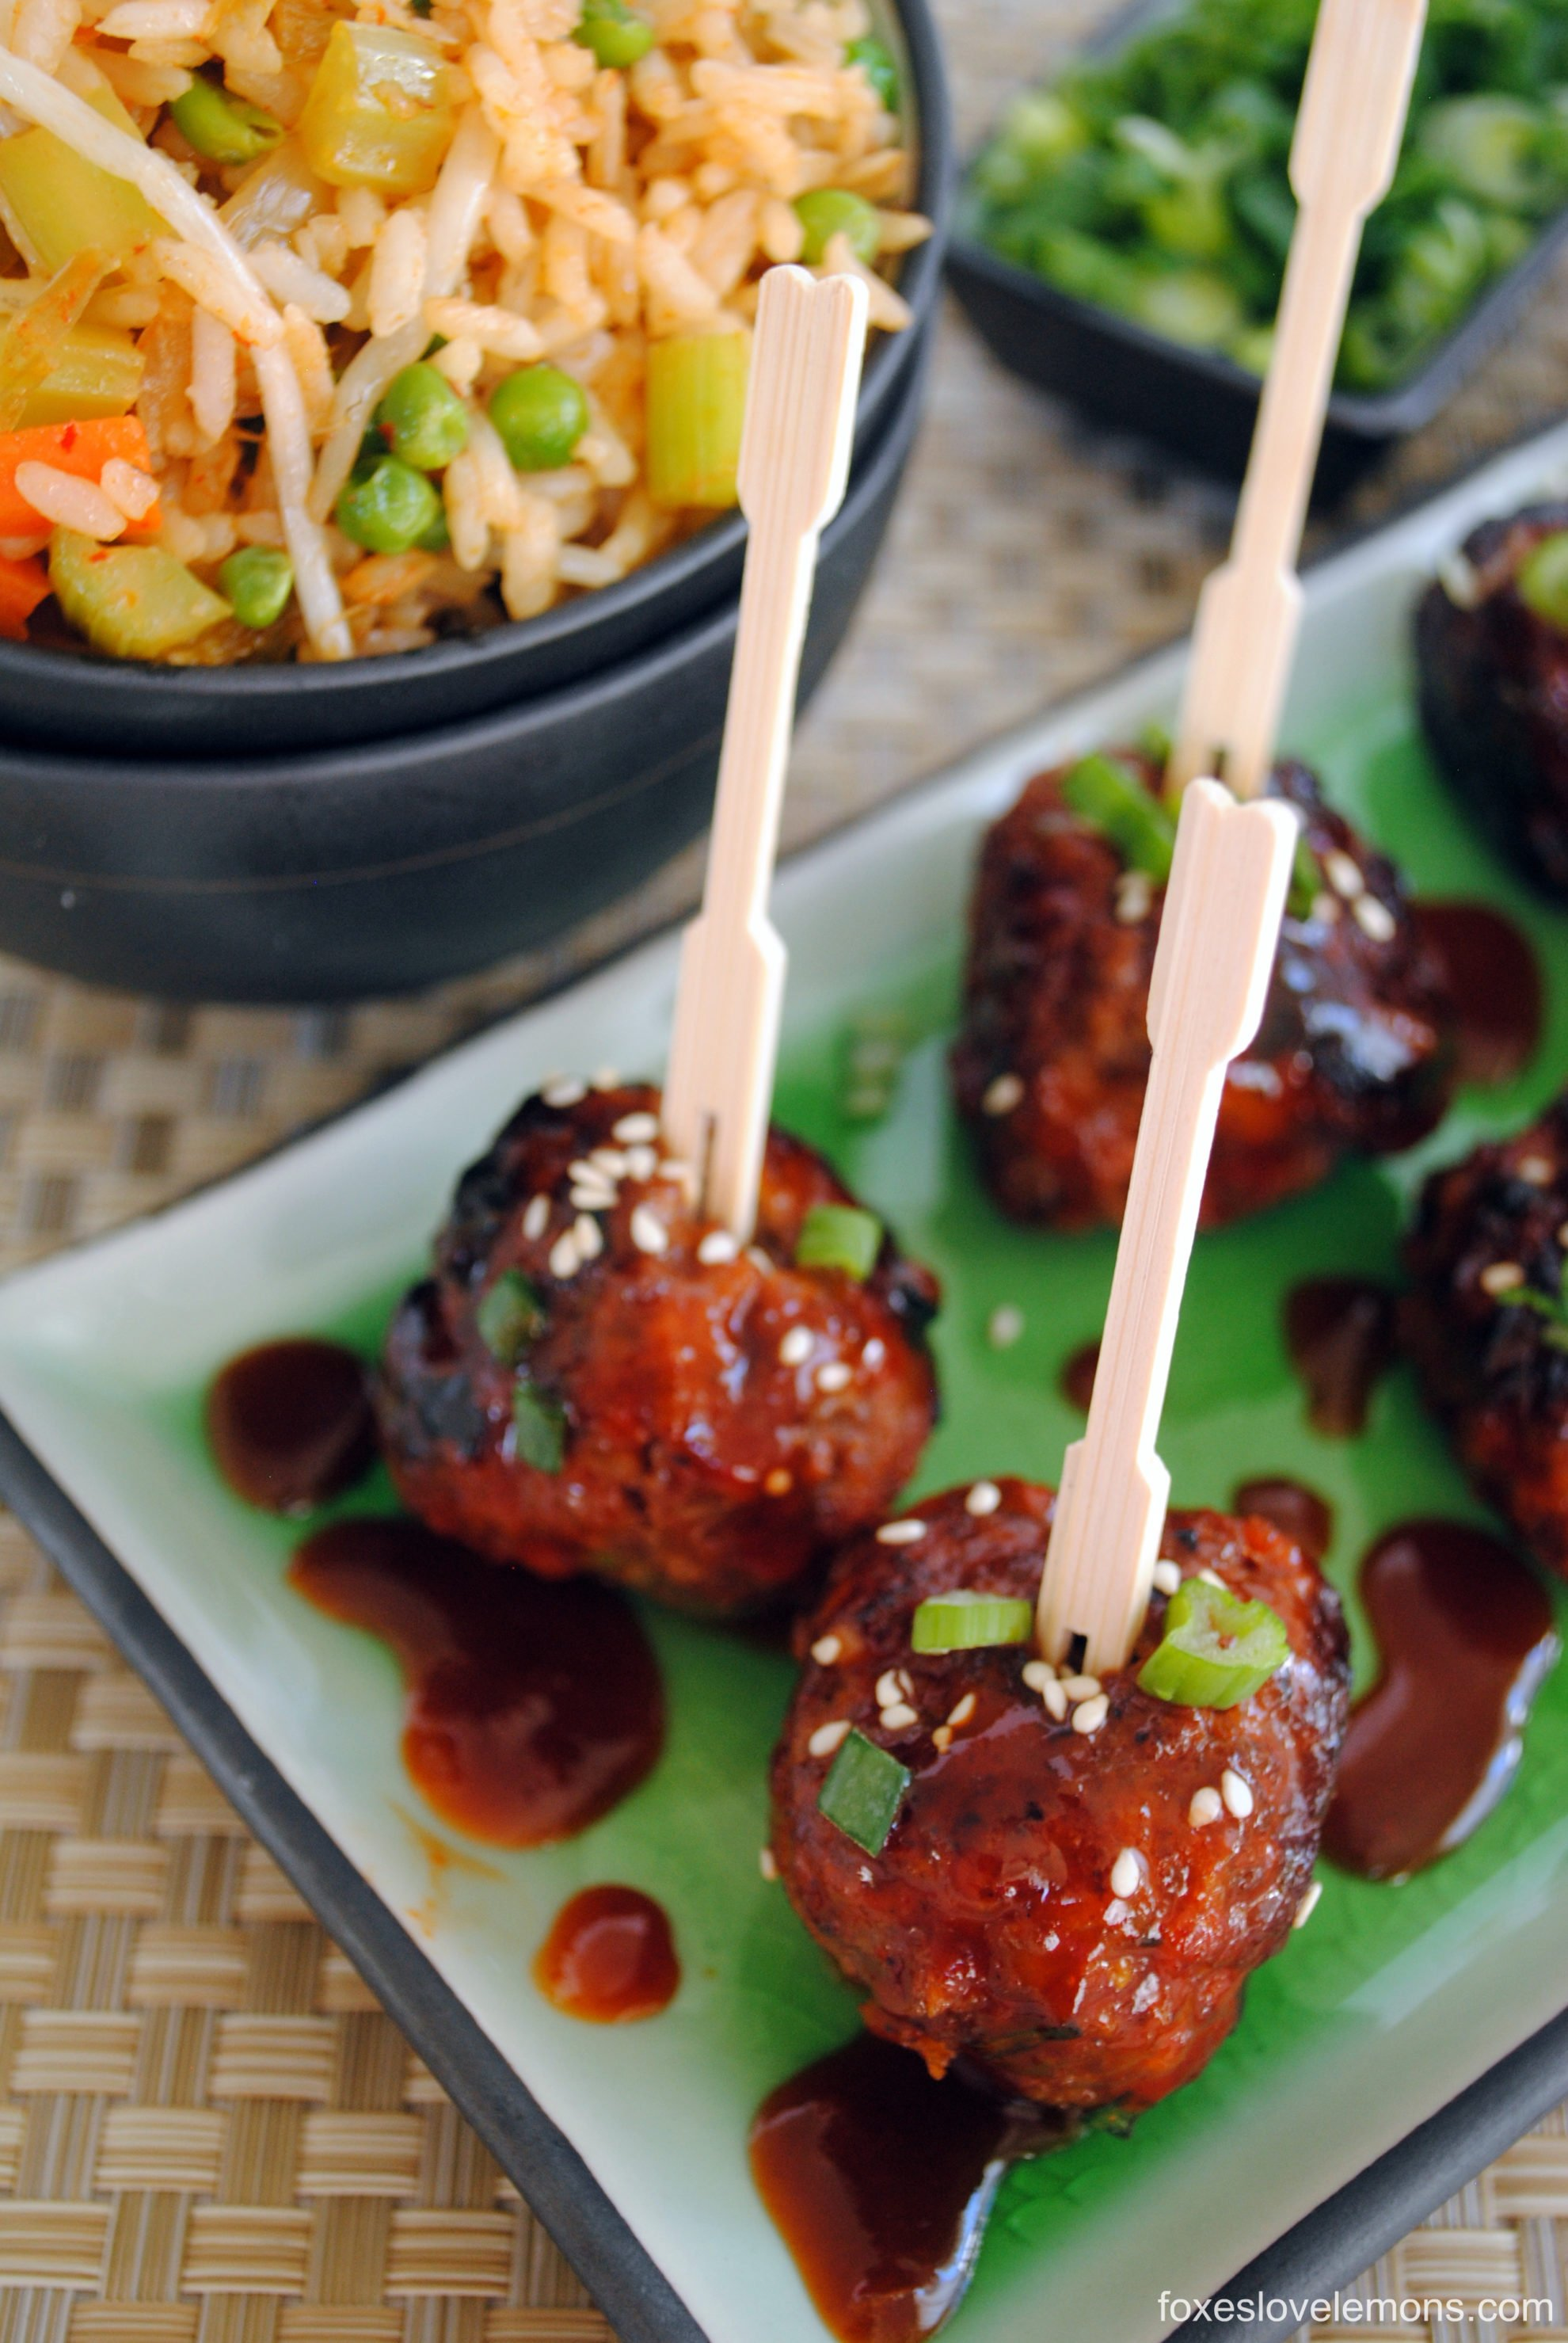 Spicy Korean-Style Gochujang Meatballs - An award-winning spicy and sweet party meatball! | foxeslovelemons.com